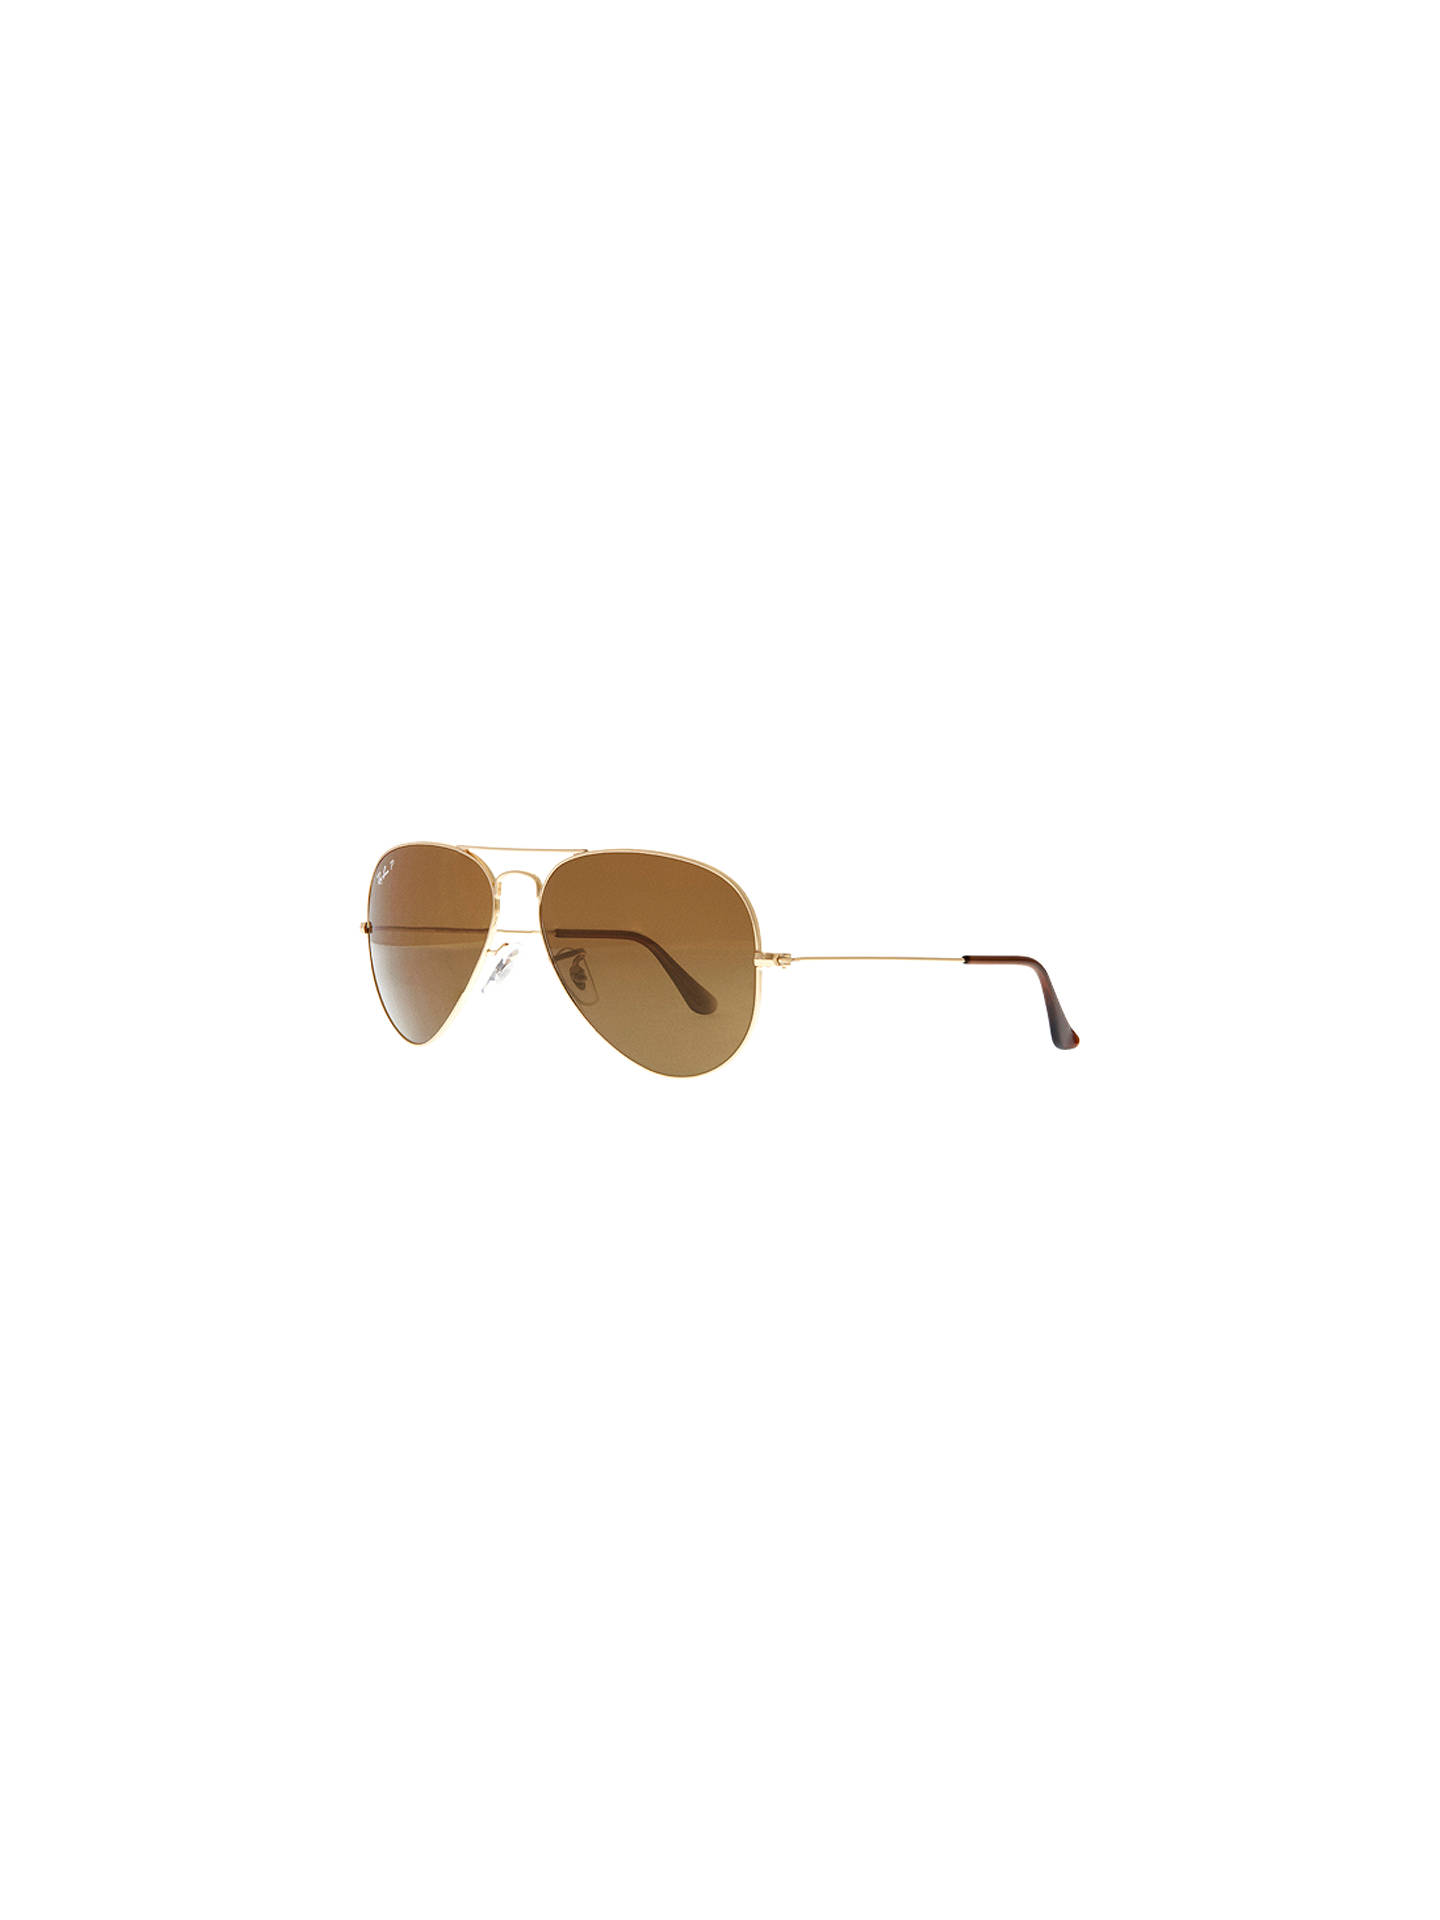 d462f4c94a Ray-Ban RB3025 Iconic Aviator Sunglasses at John Lewis   Partners